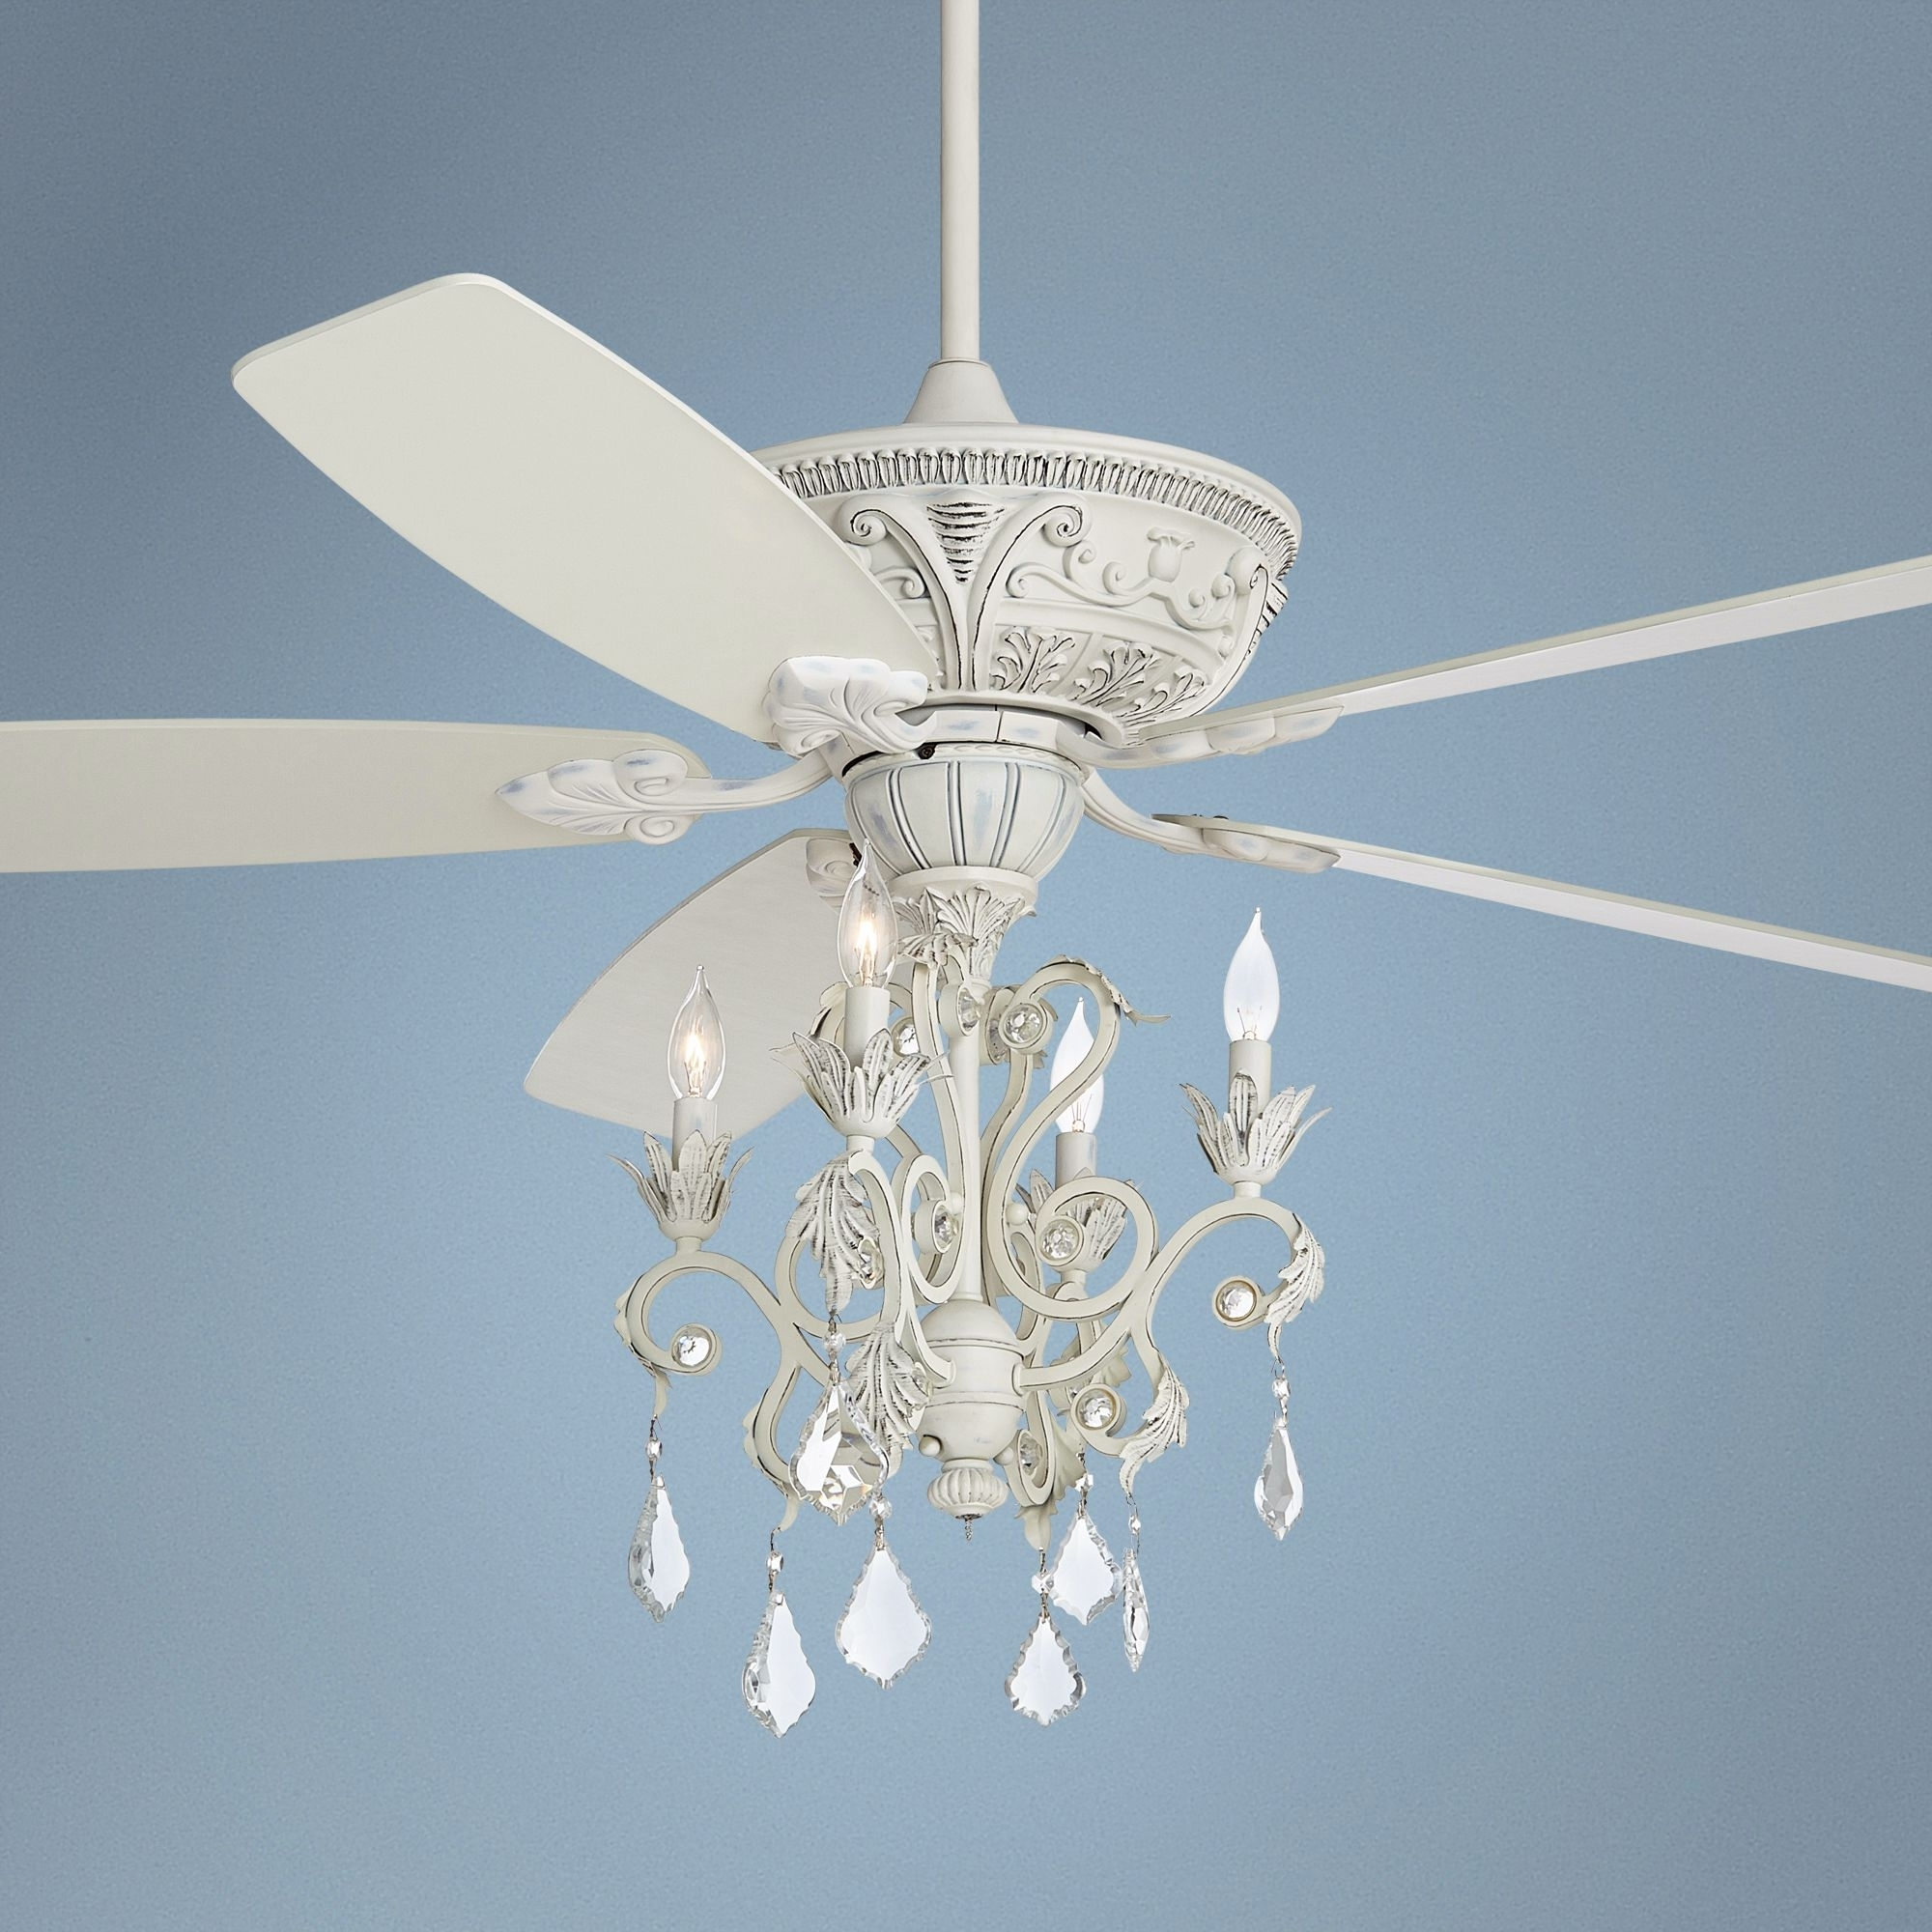 Outdoor Ceiling Fans With Mason Jar Lights Regarding Most Recent Ideas: Customize Your Ceiling Fan With Hunter Fan Light Kit Lowes (View 13 of 20)